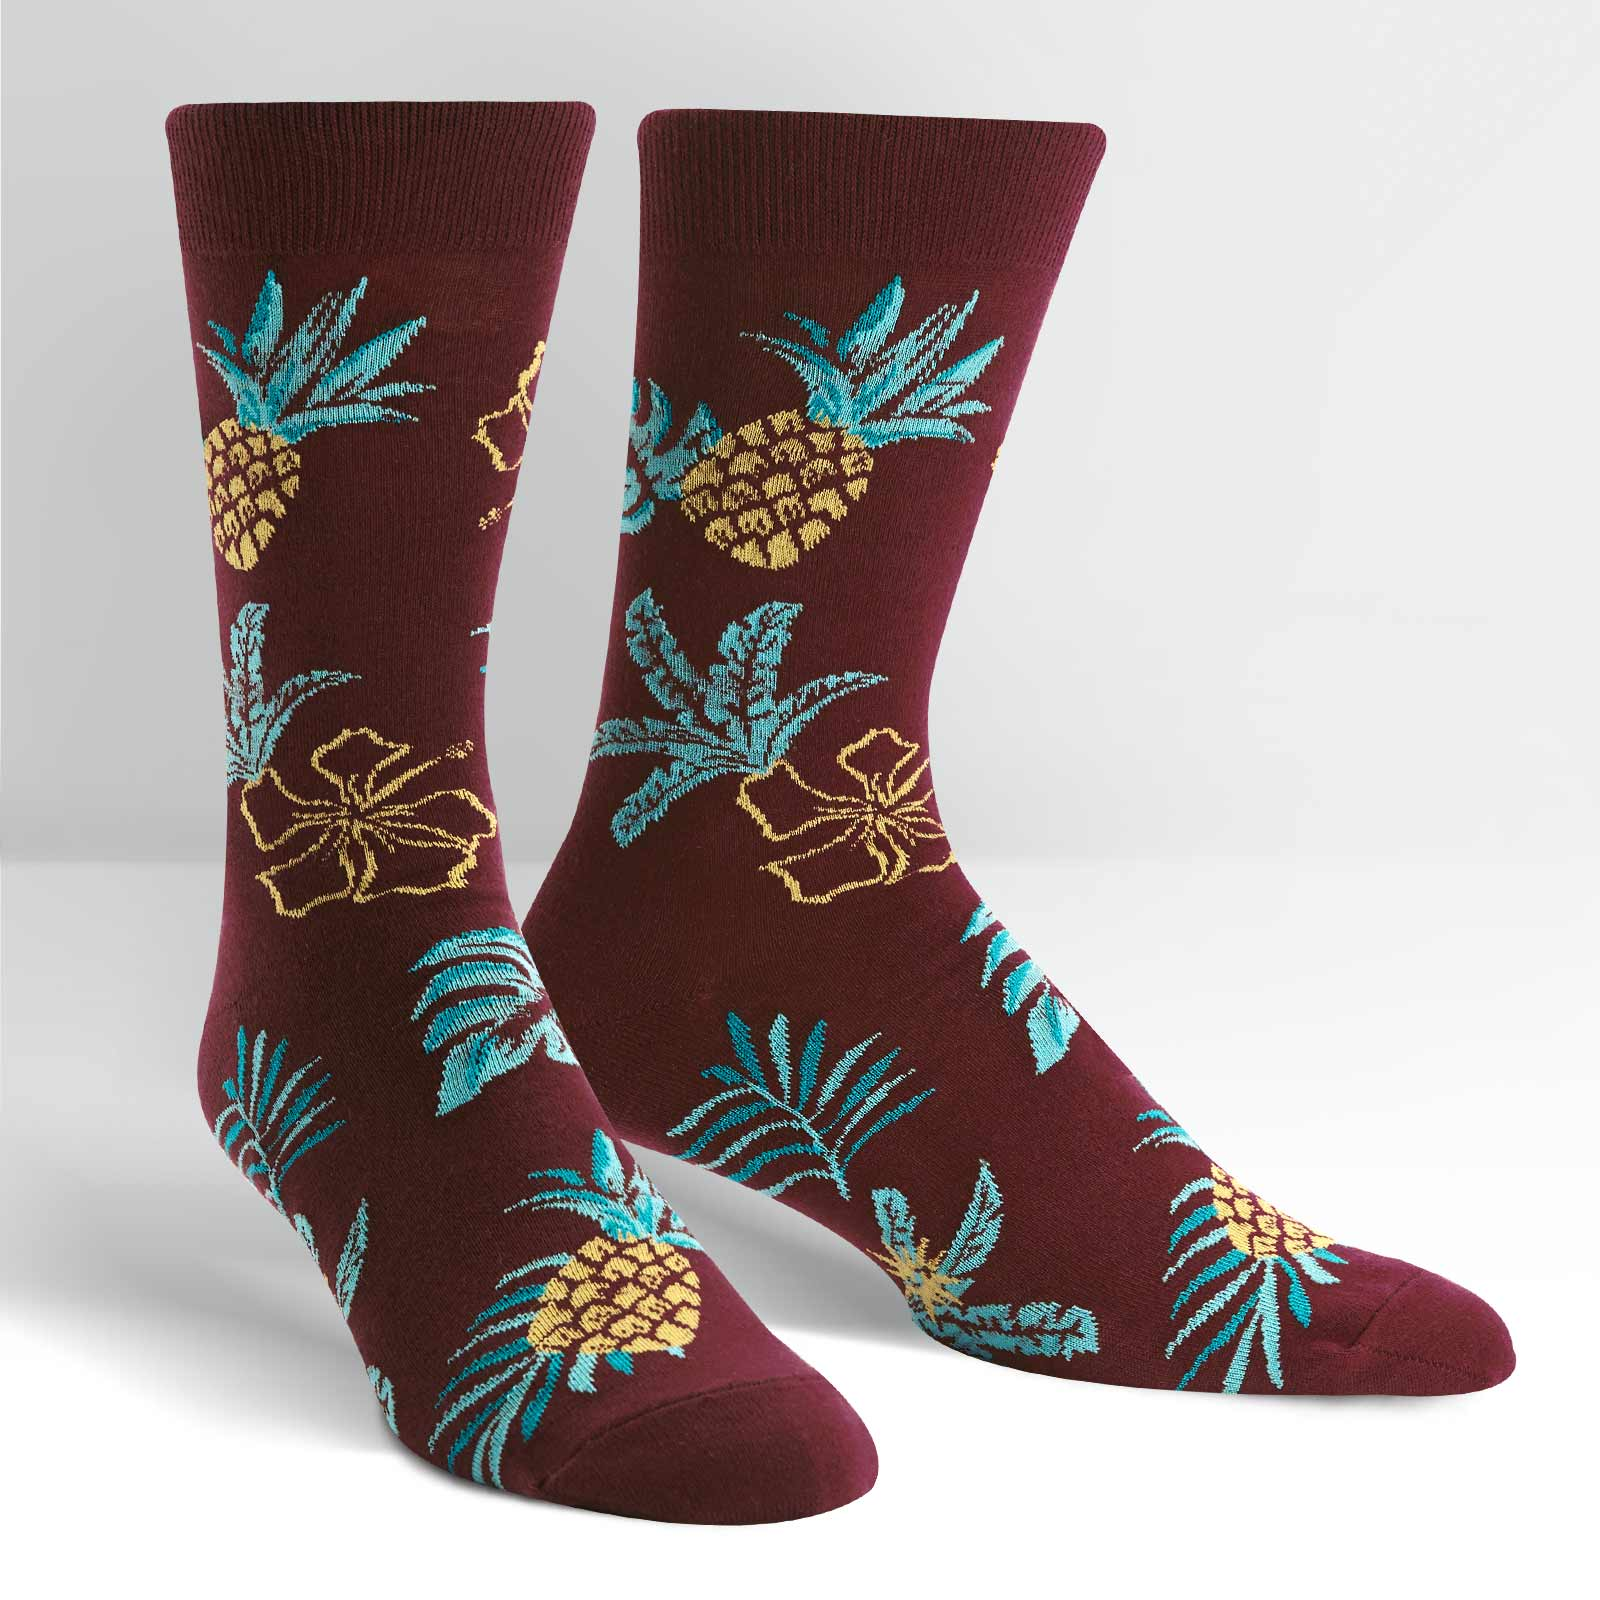 Calcetines-hawaiian-sock-day-sock-it-to-me-the-socks-closet